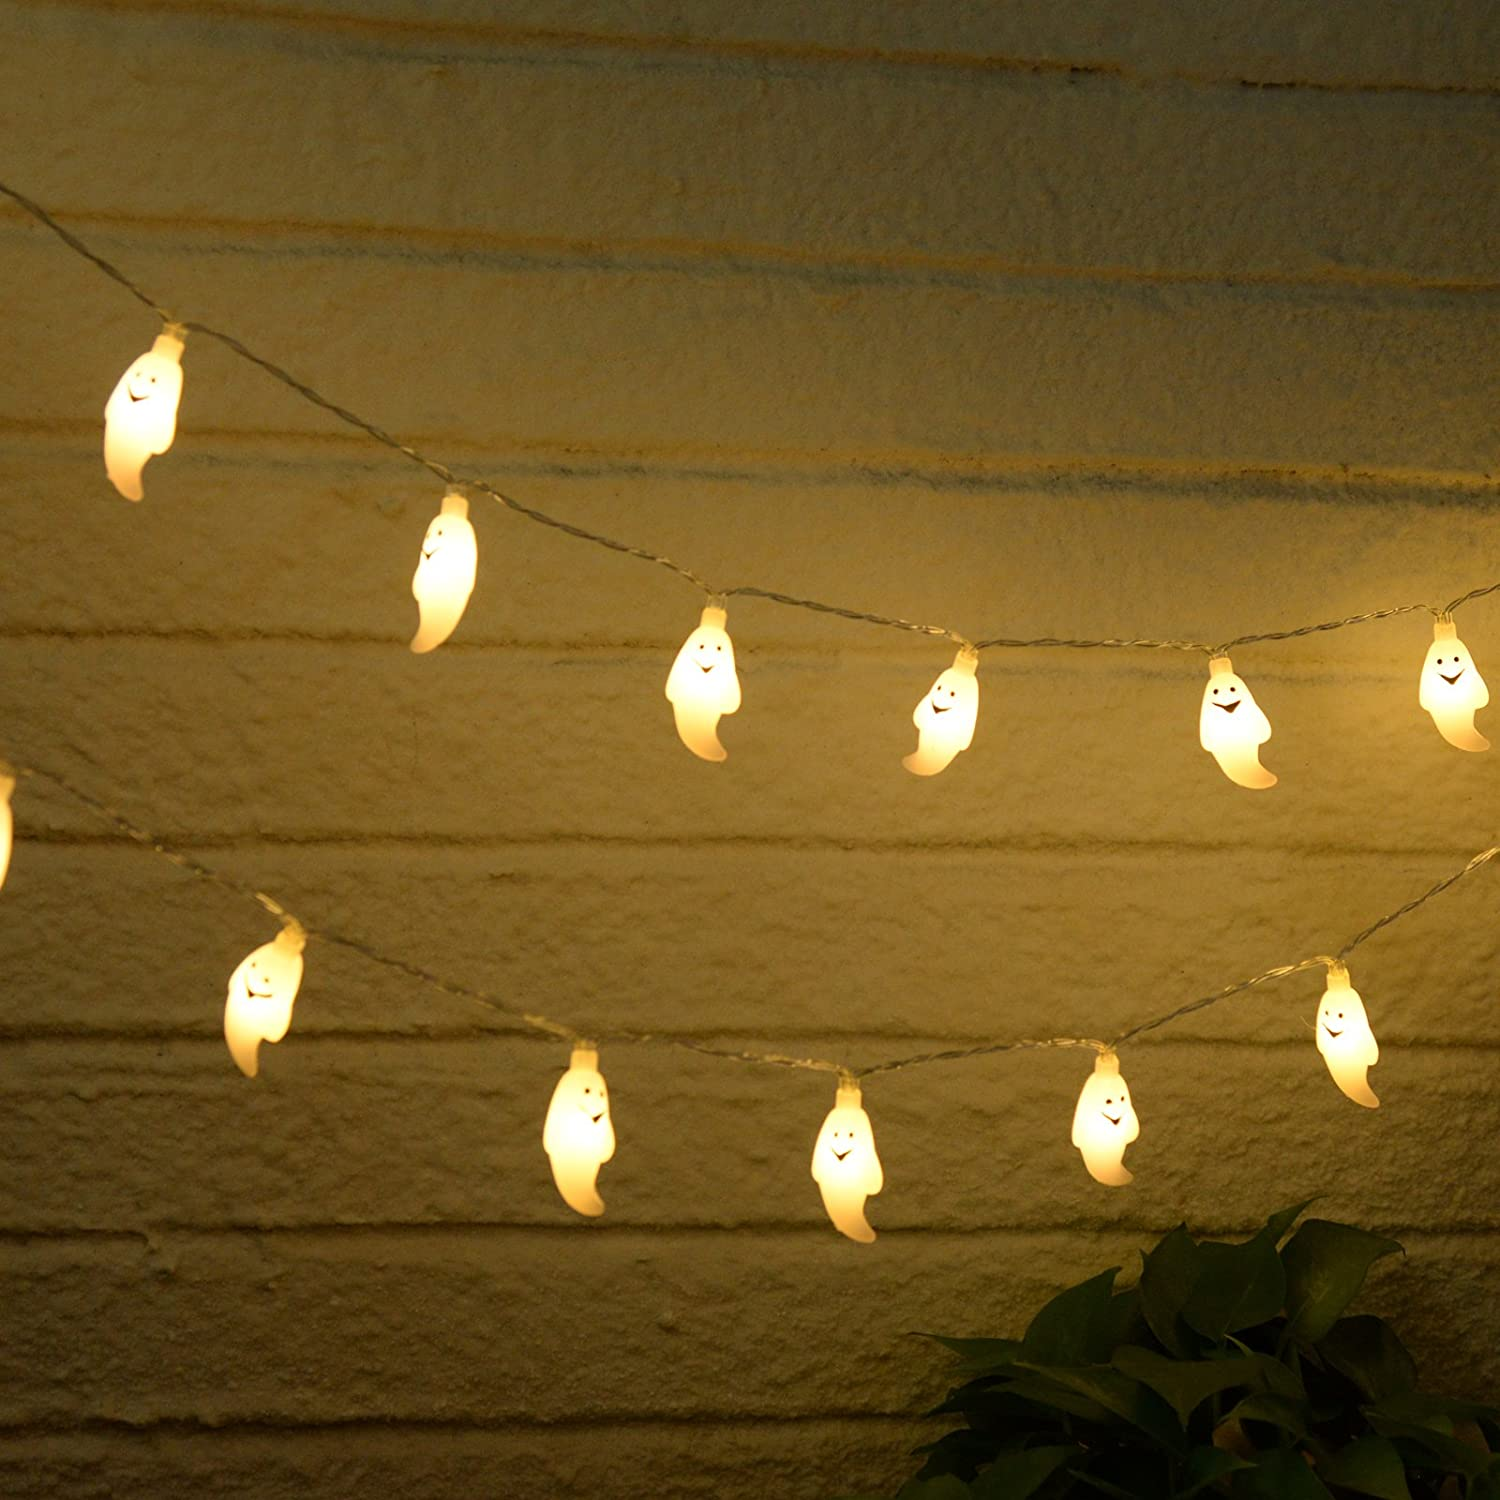 Amazoncom Ghost String Lights, Halloween Ghost Lights, Battery Operated 20